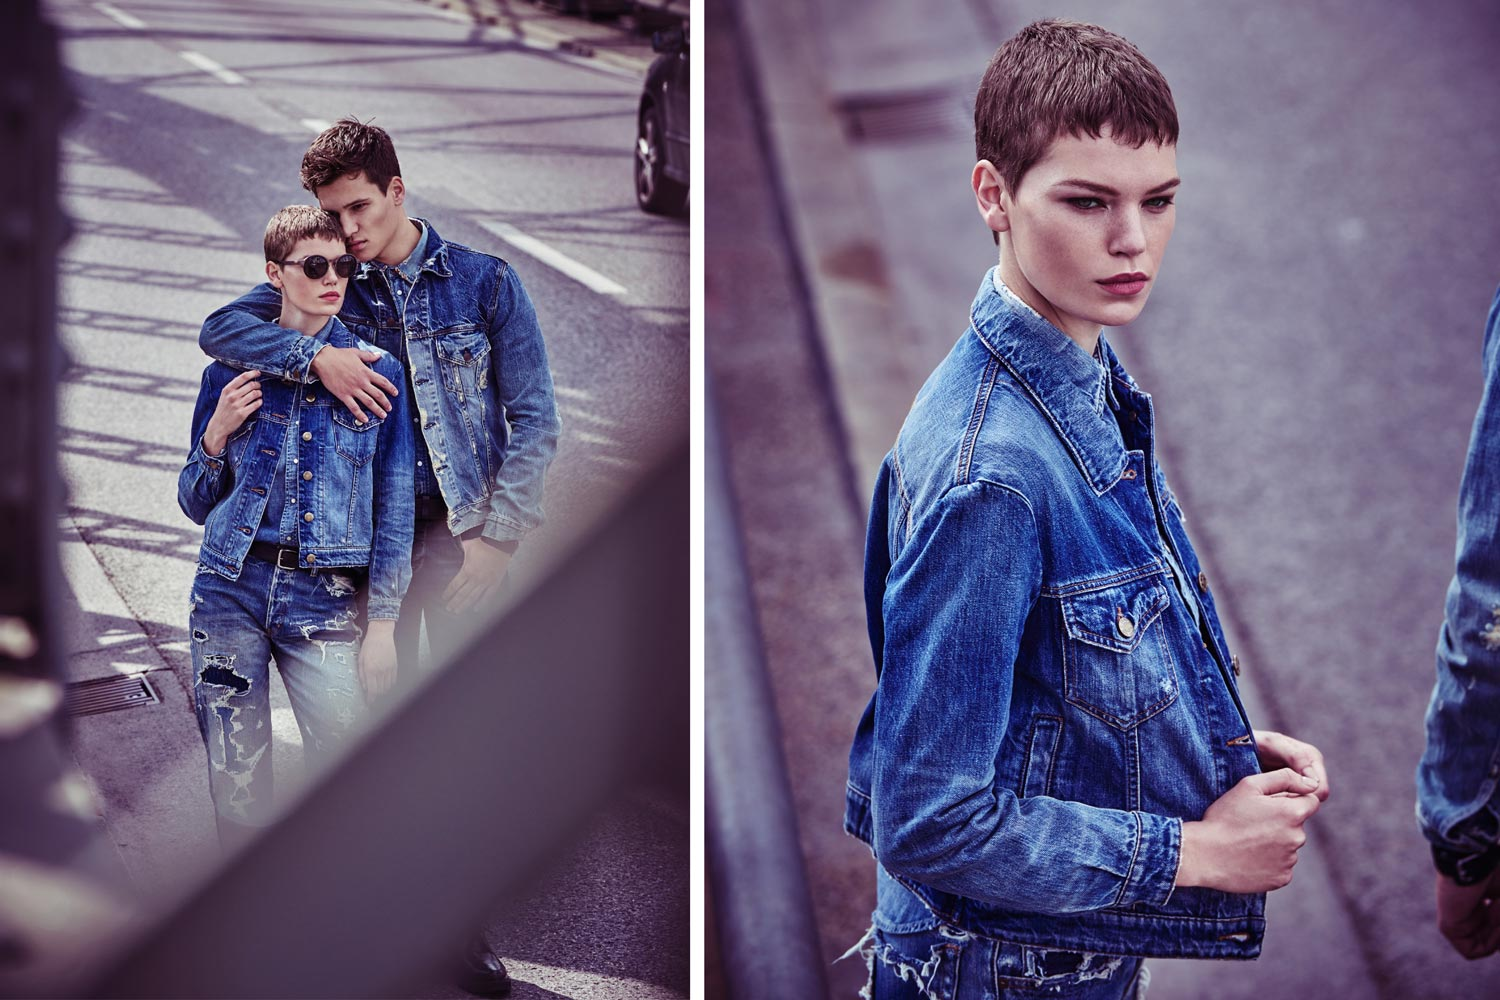 ASTRID M OBERT PHOTOGRAPHY PRESENTS - DENIM